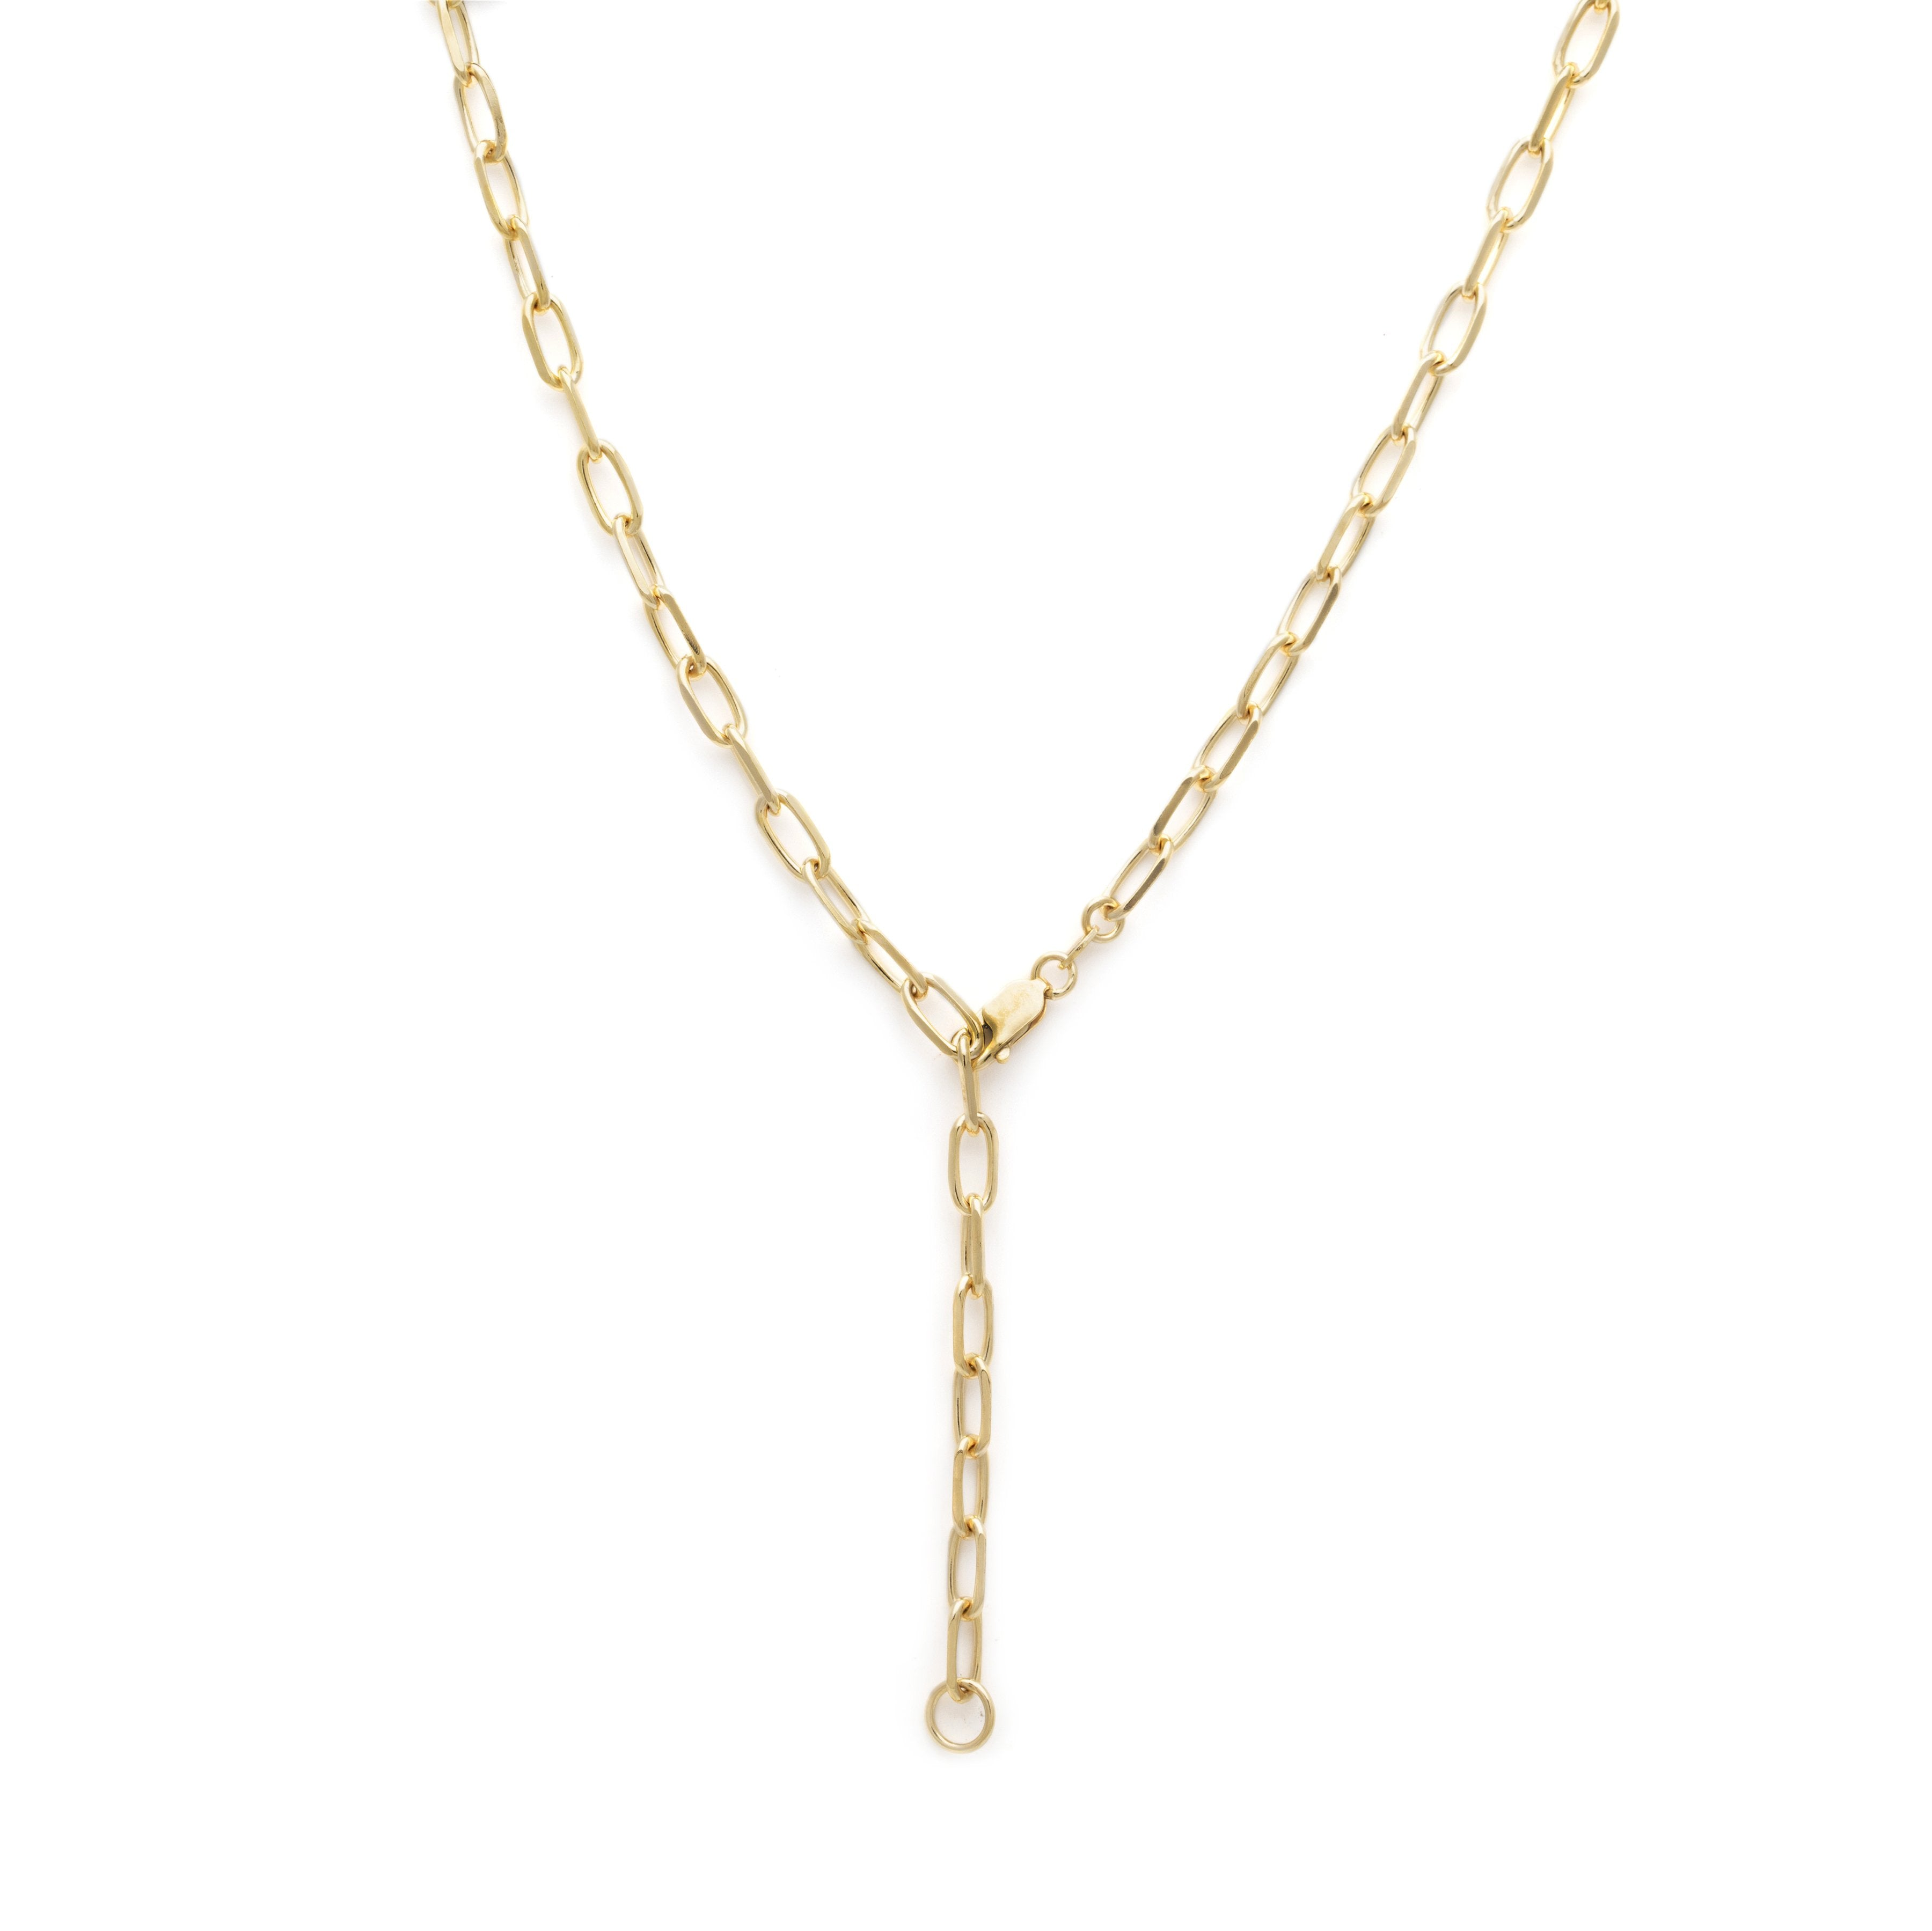 3 in 1 Thick Staple Chain - Gold Vermeil